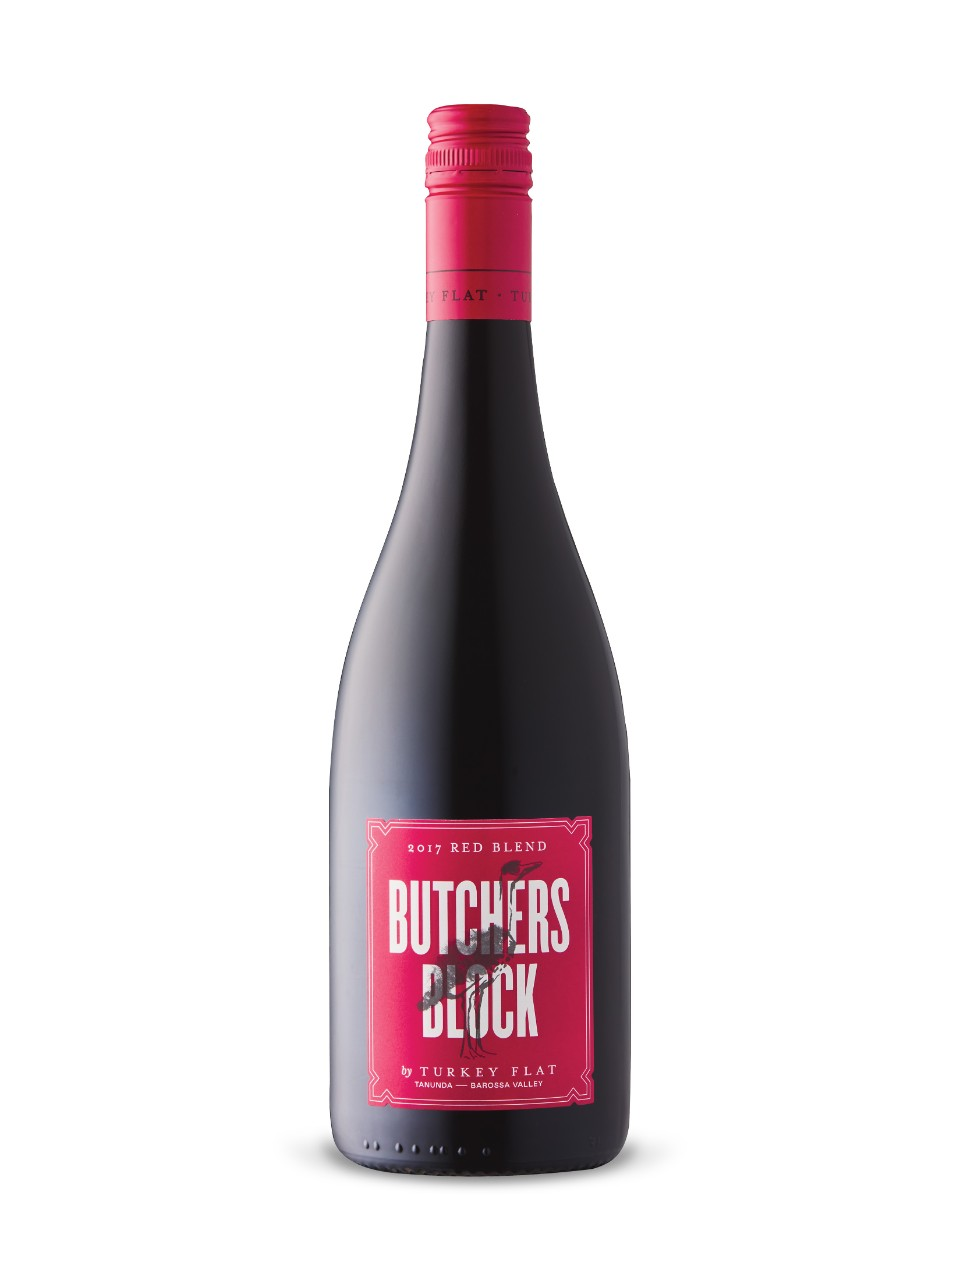 Turkey Flat Butchers Block Shiraz/Grenache/Mourvèdre 2015